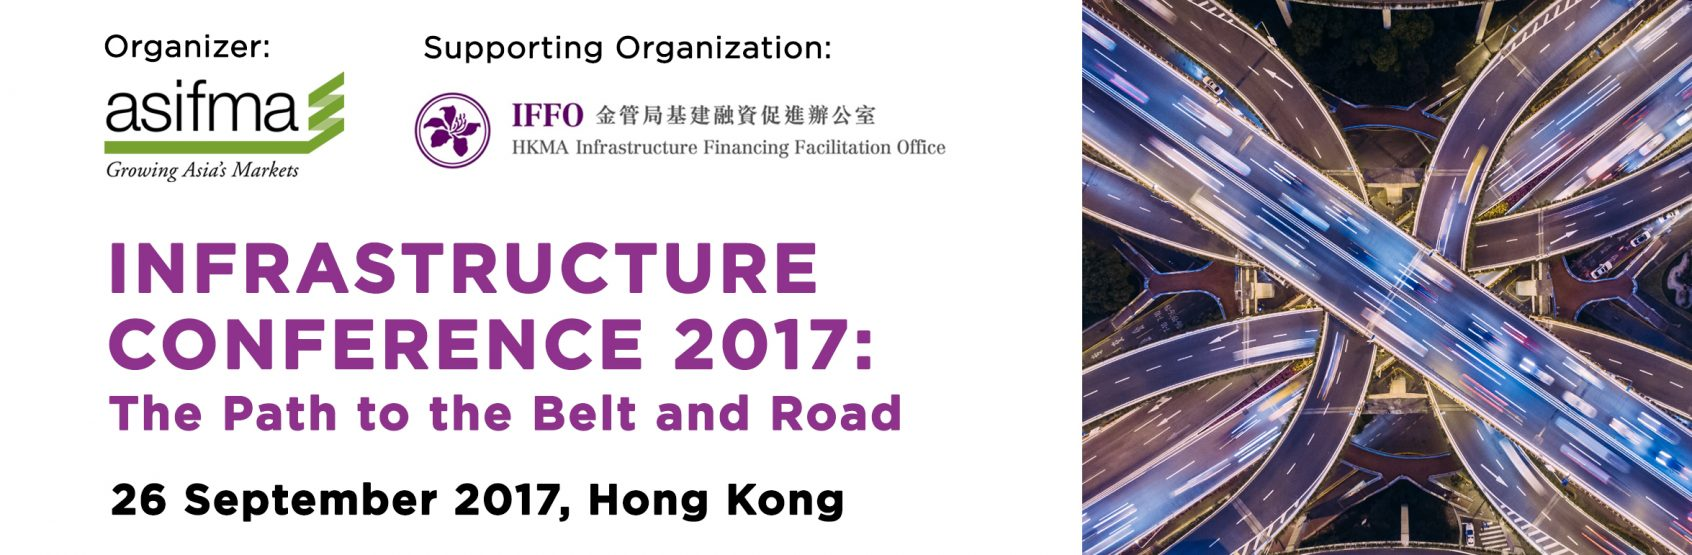 infrastructure-conference_high-res